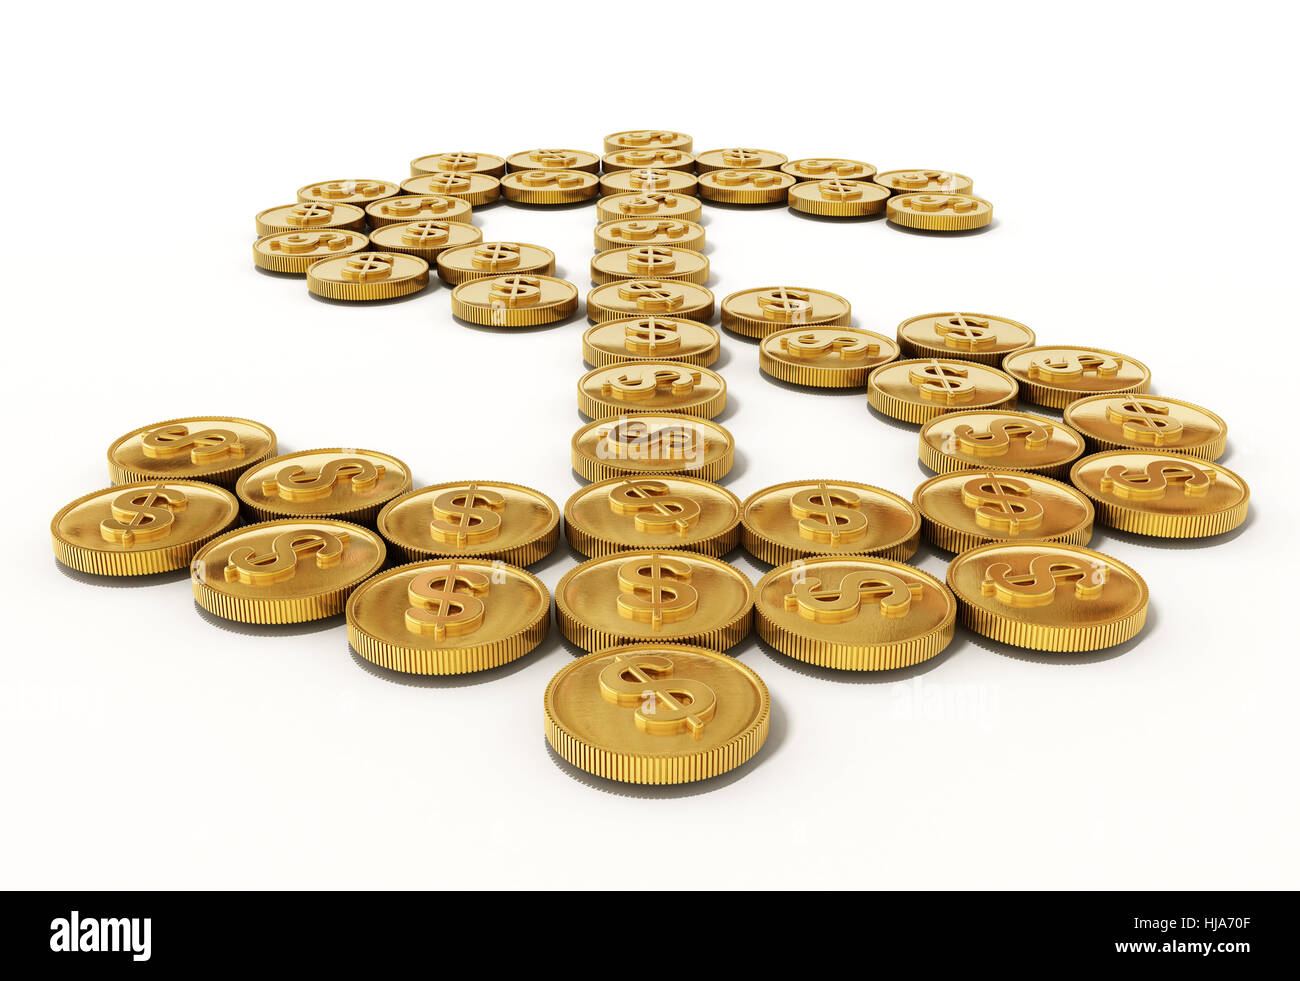 Gold coins forming dollar symbol. 3D illustration. - Stock Image